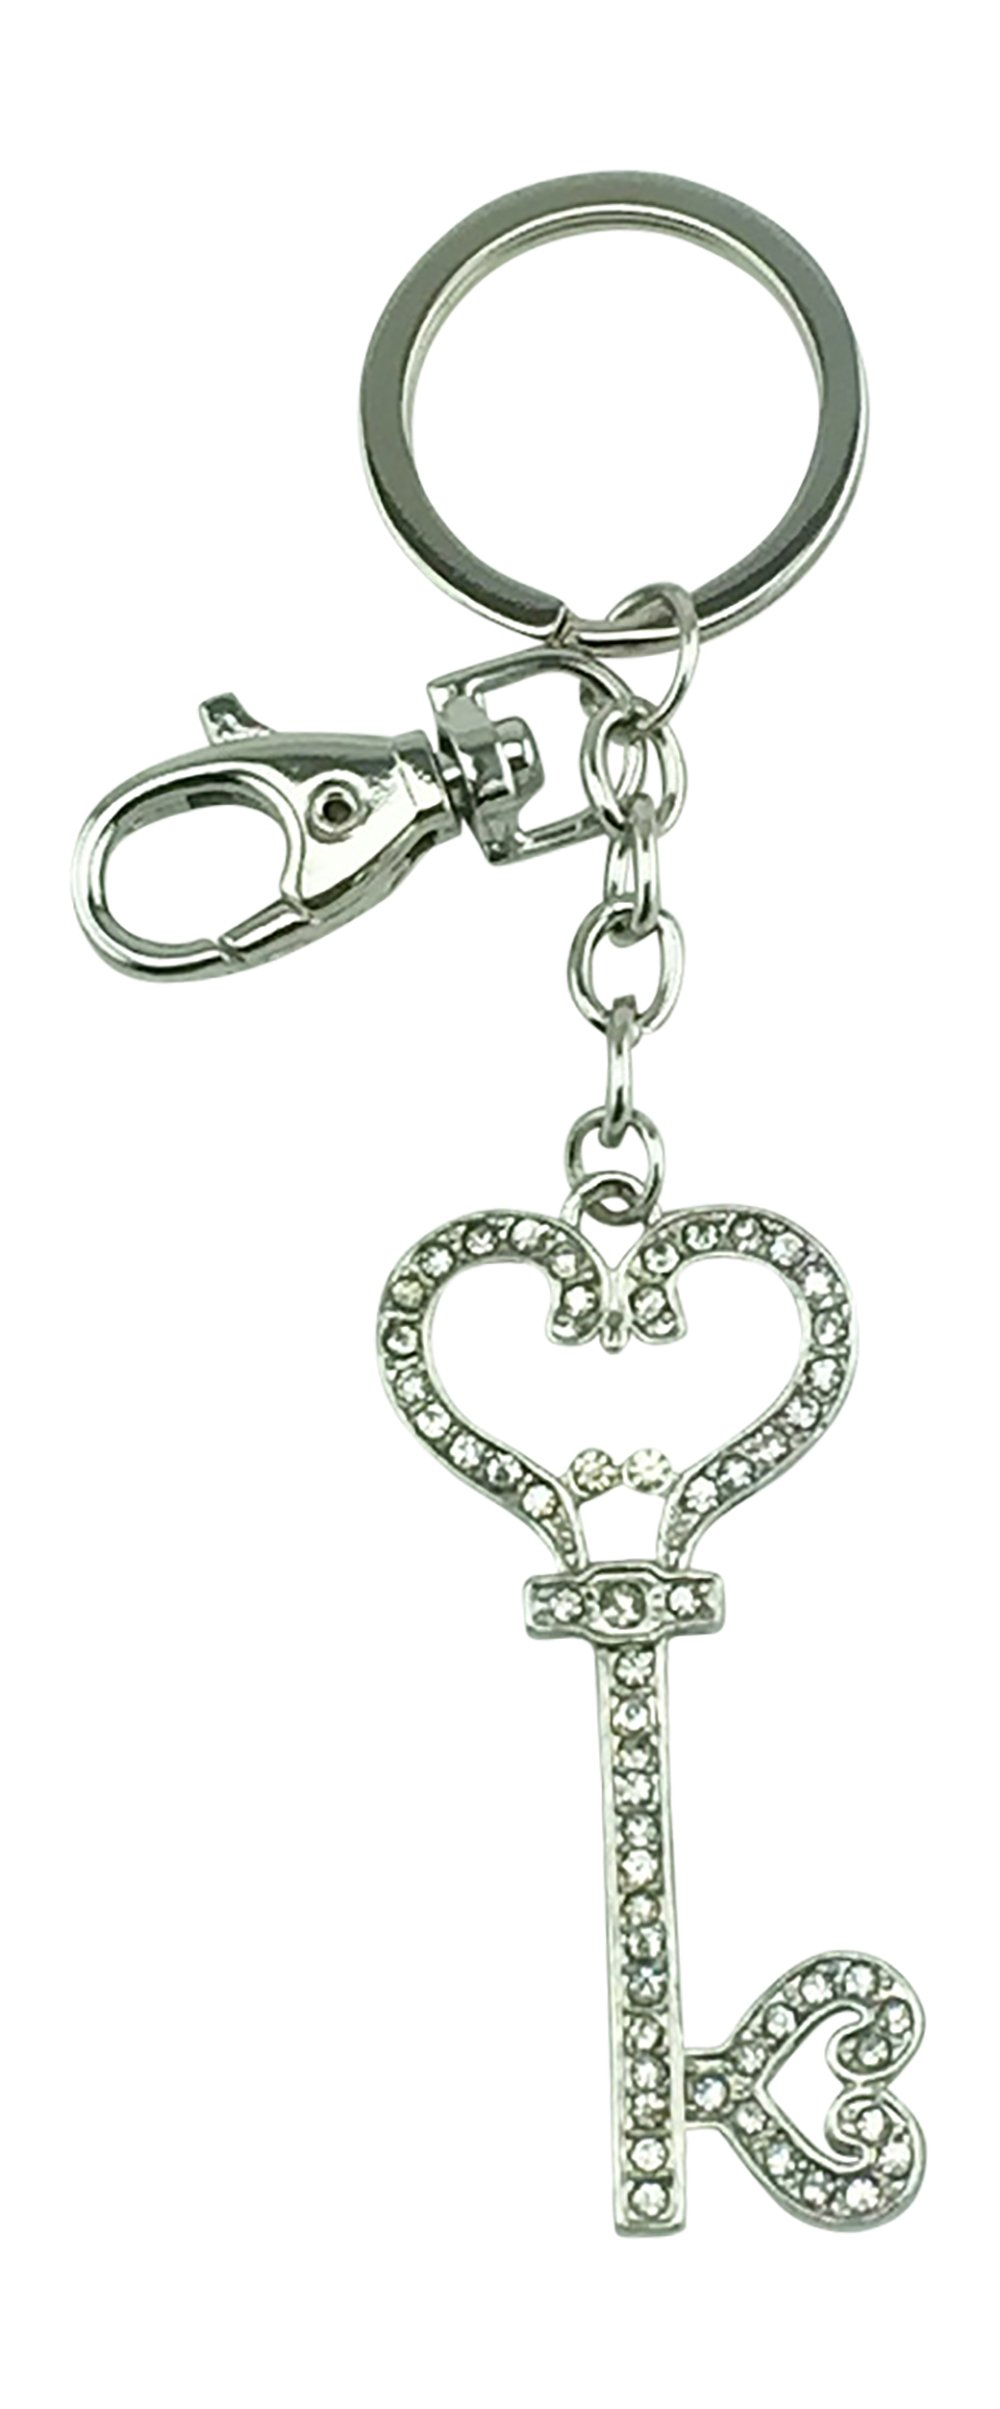 Kubla Craft Bejeweled Key To My Heart Key Chain, 5 Inches Long